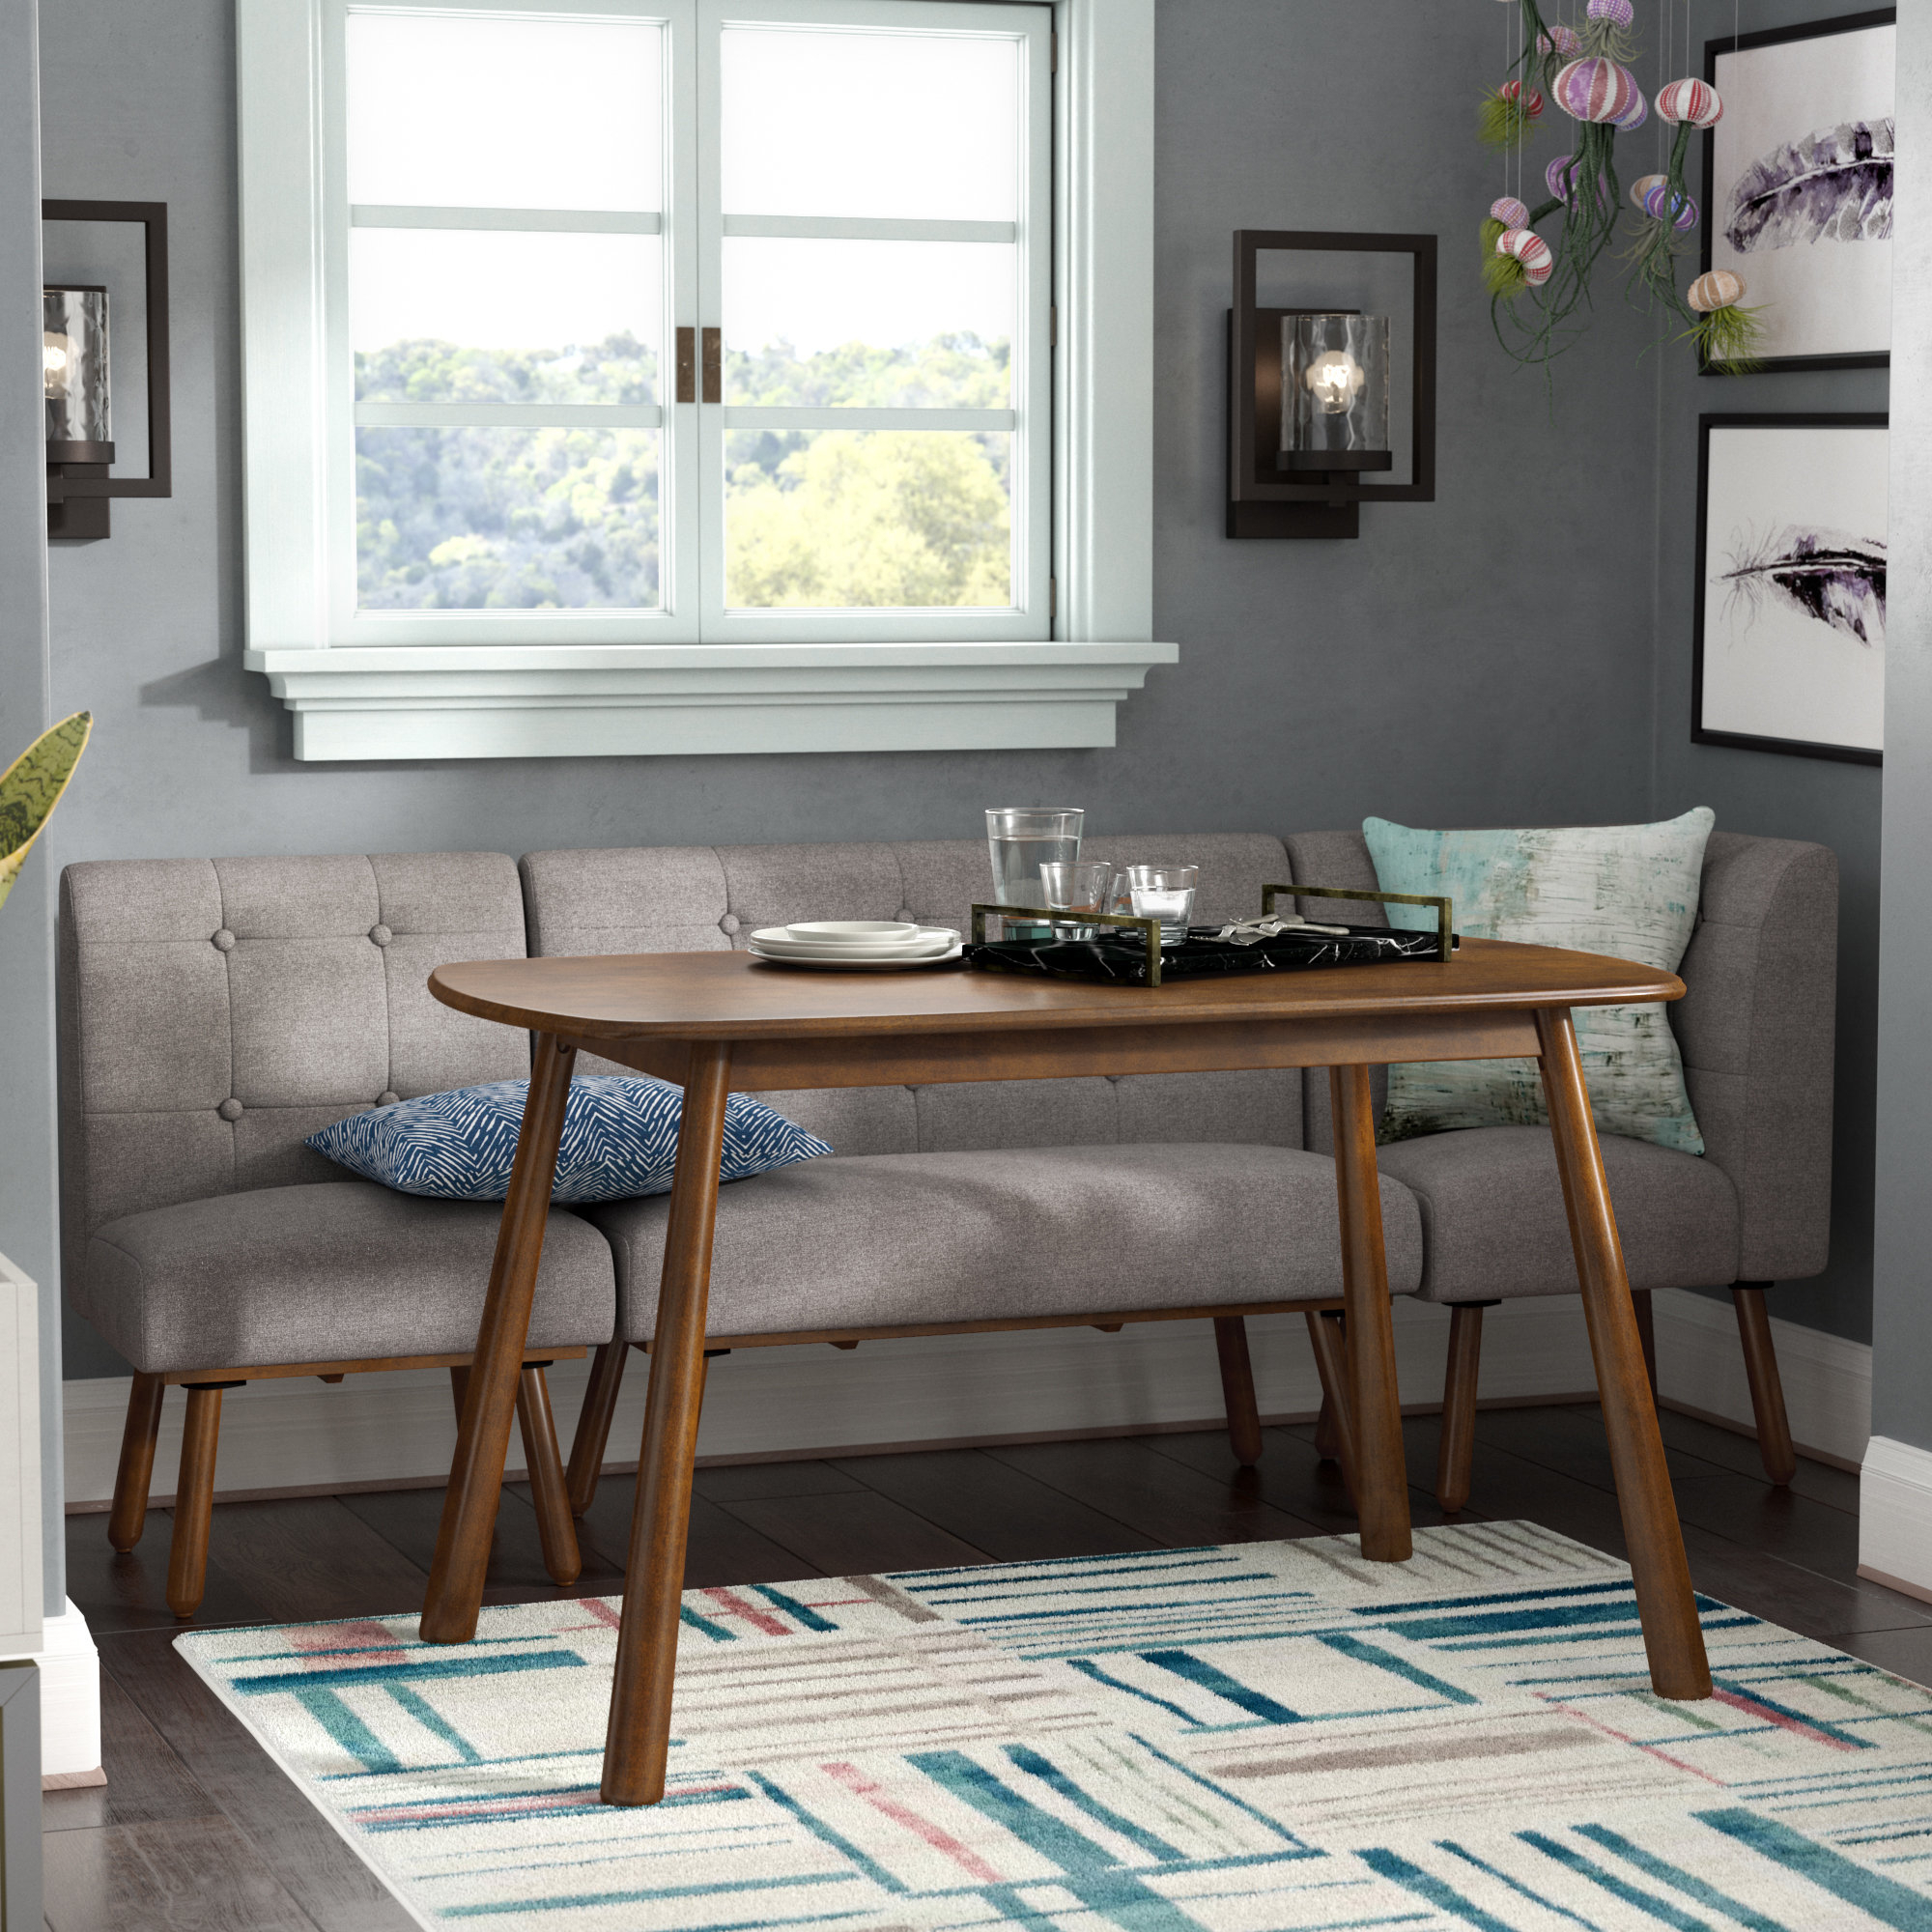 Well Liked Bucci 4 Piece Breakfast Nook Dining Set Throughout Liles 5 Piece Breakfast Nook Dining Sets (View 19 of 20)